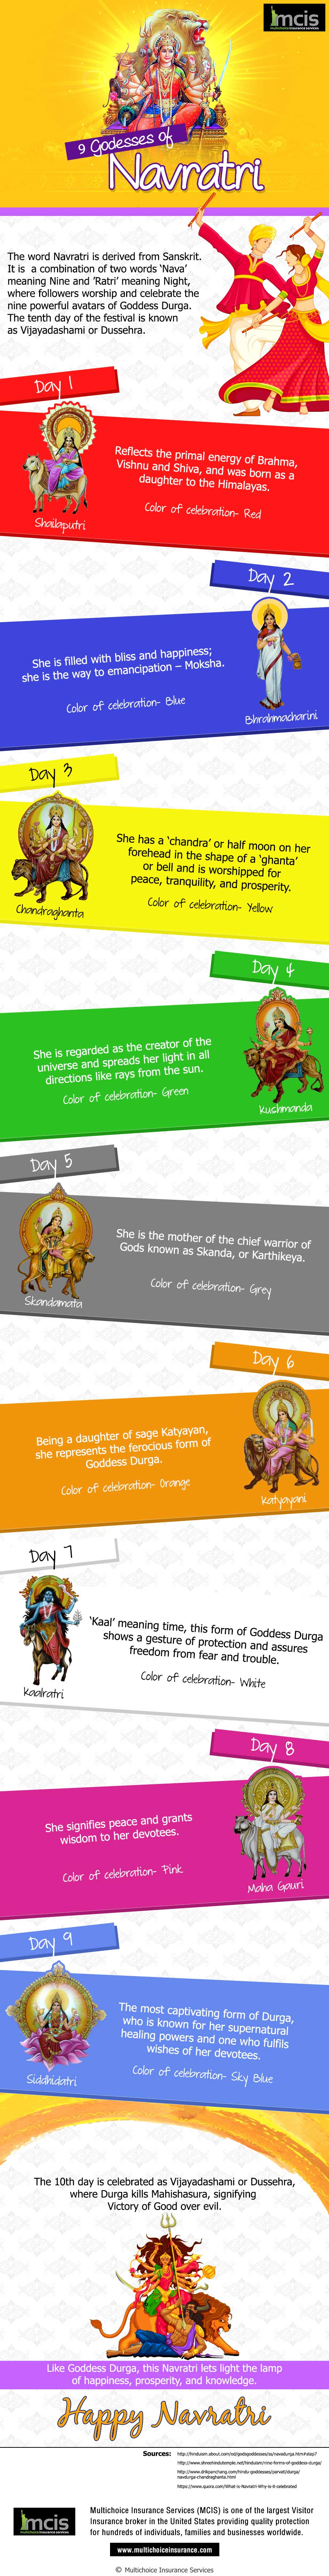 9 godesses of navratri